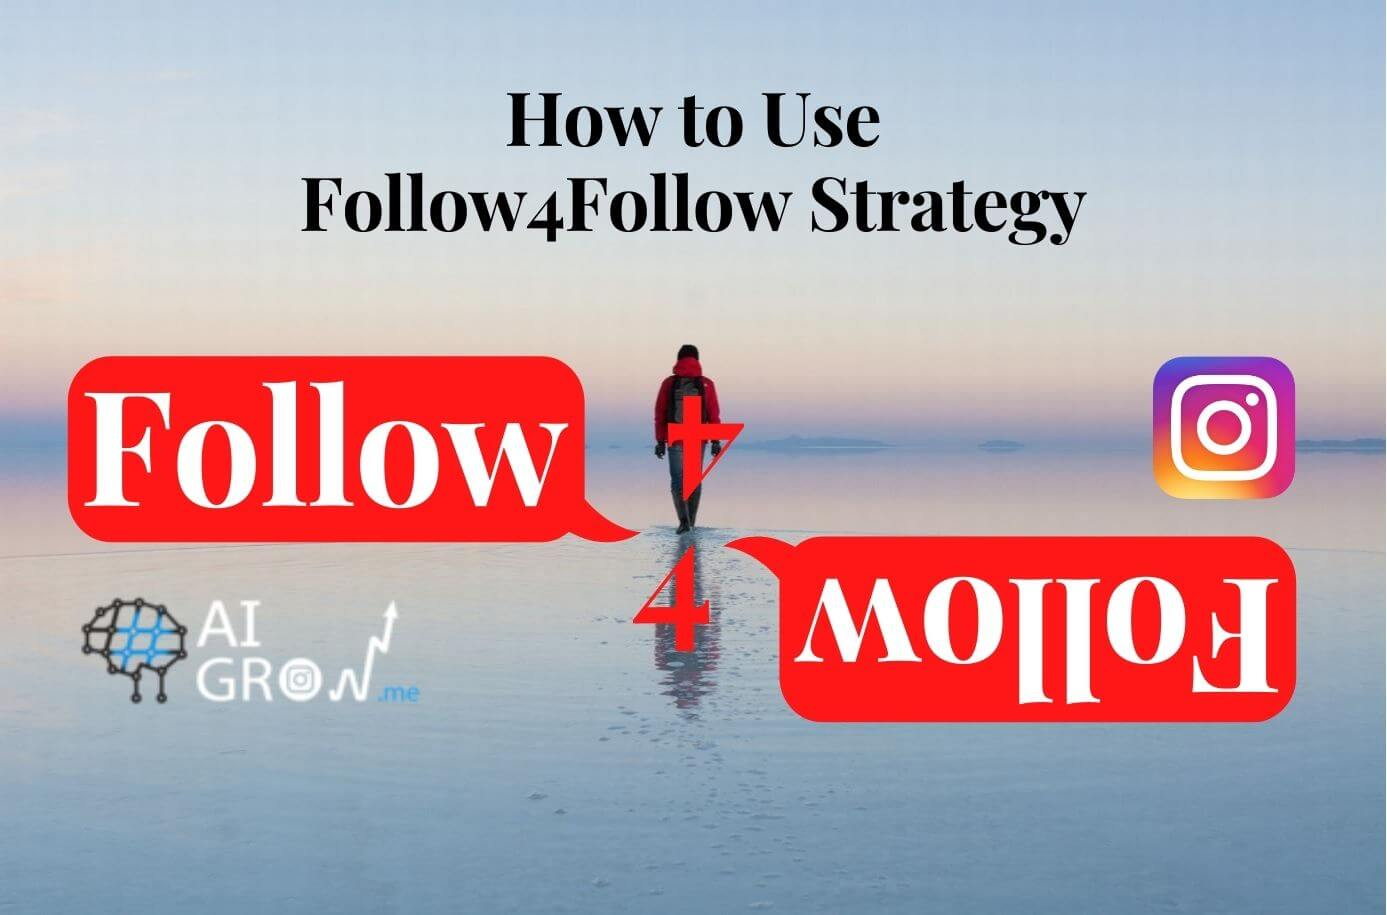 How to Use Follow4Follow Strategy to Gain IG Followers in 2020